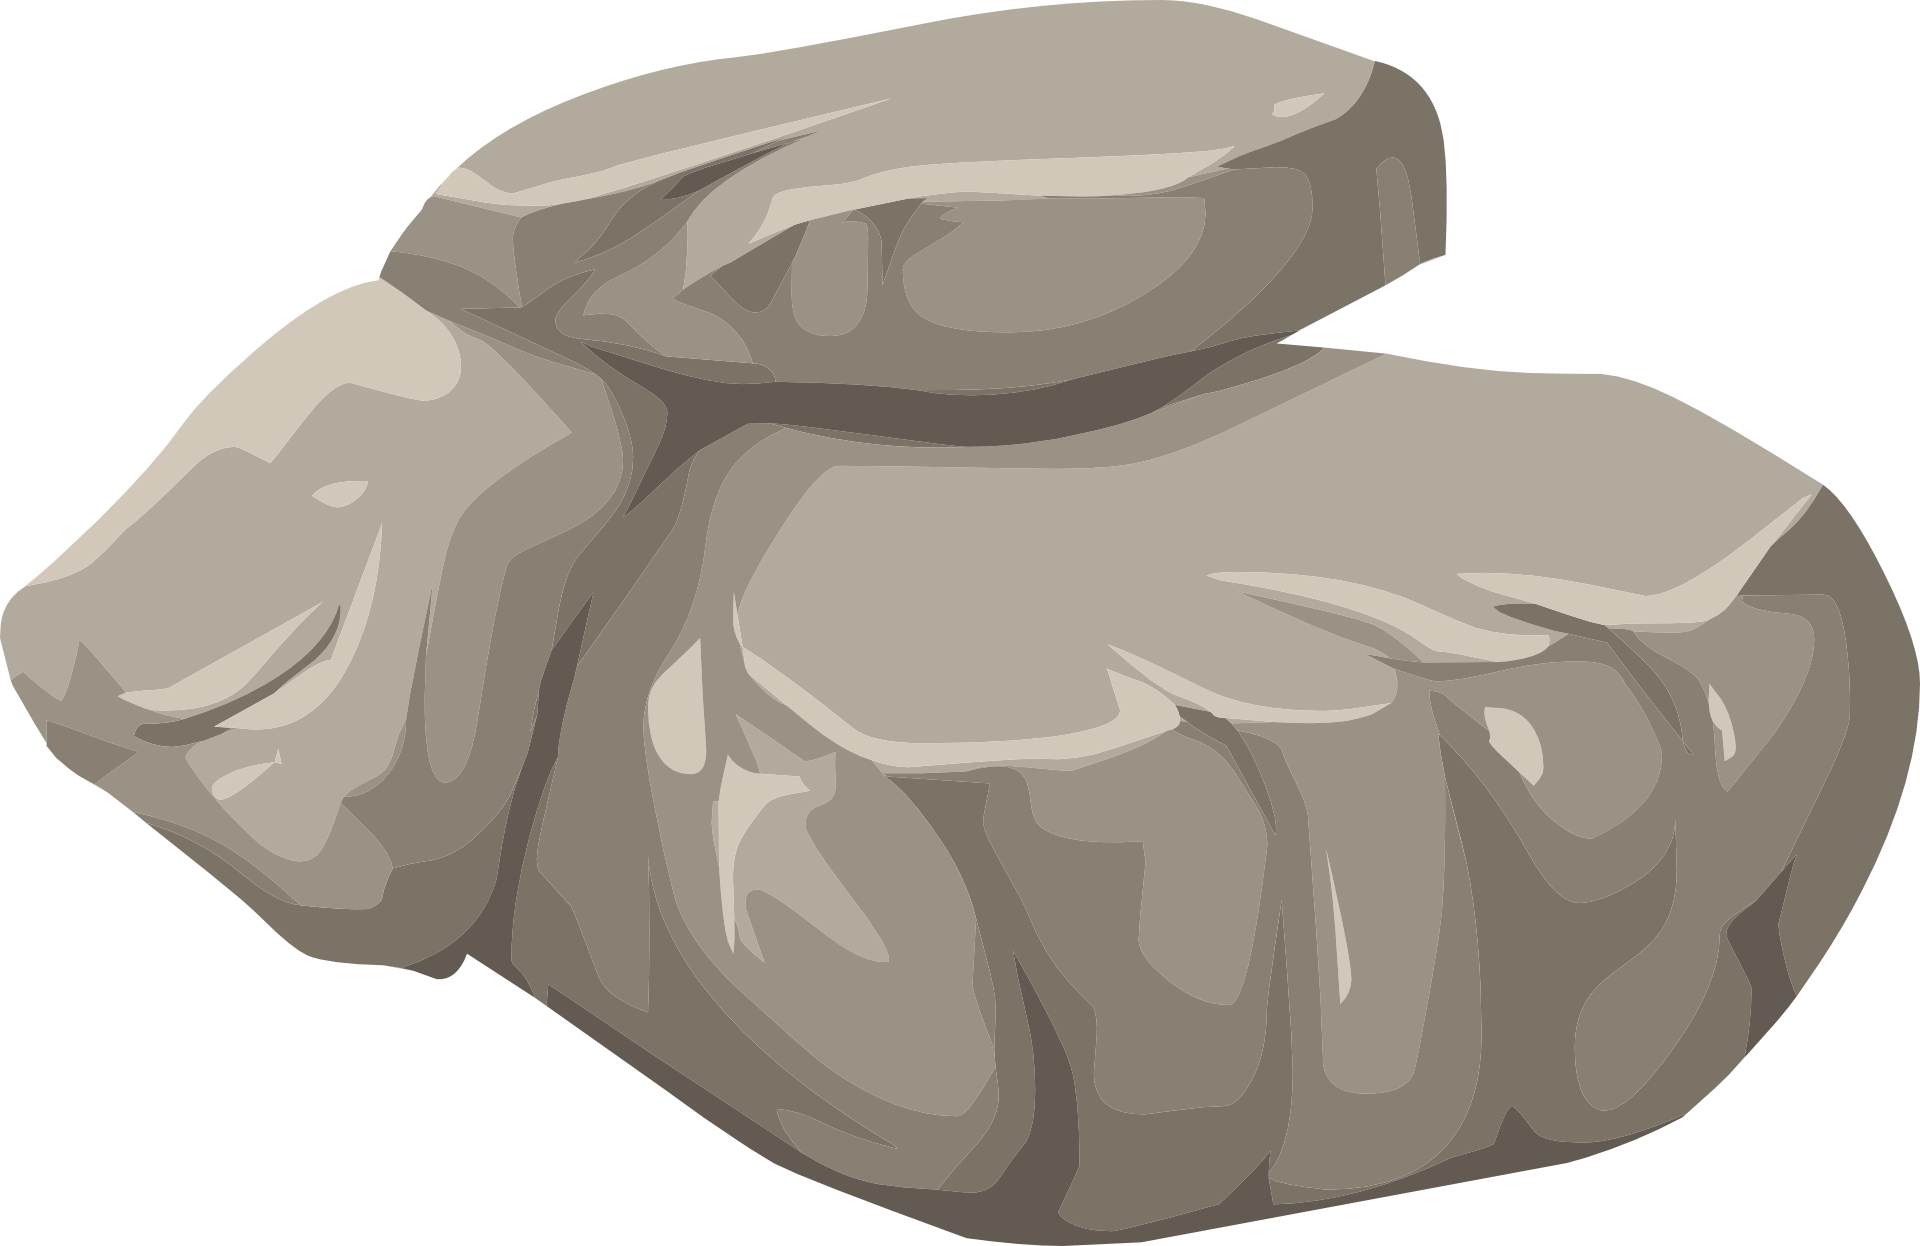 Boulder clipart round stone. Rock nature granite drawing